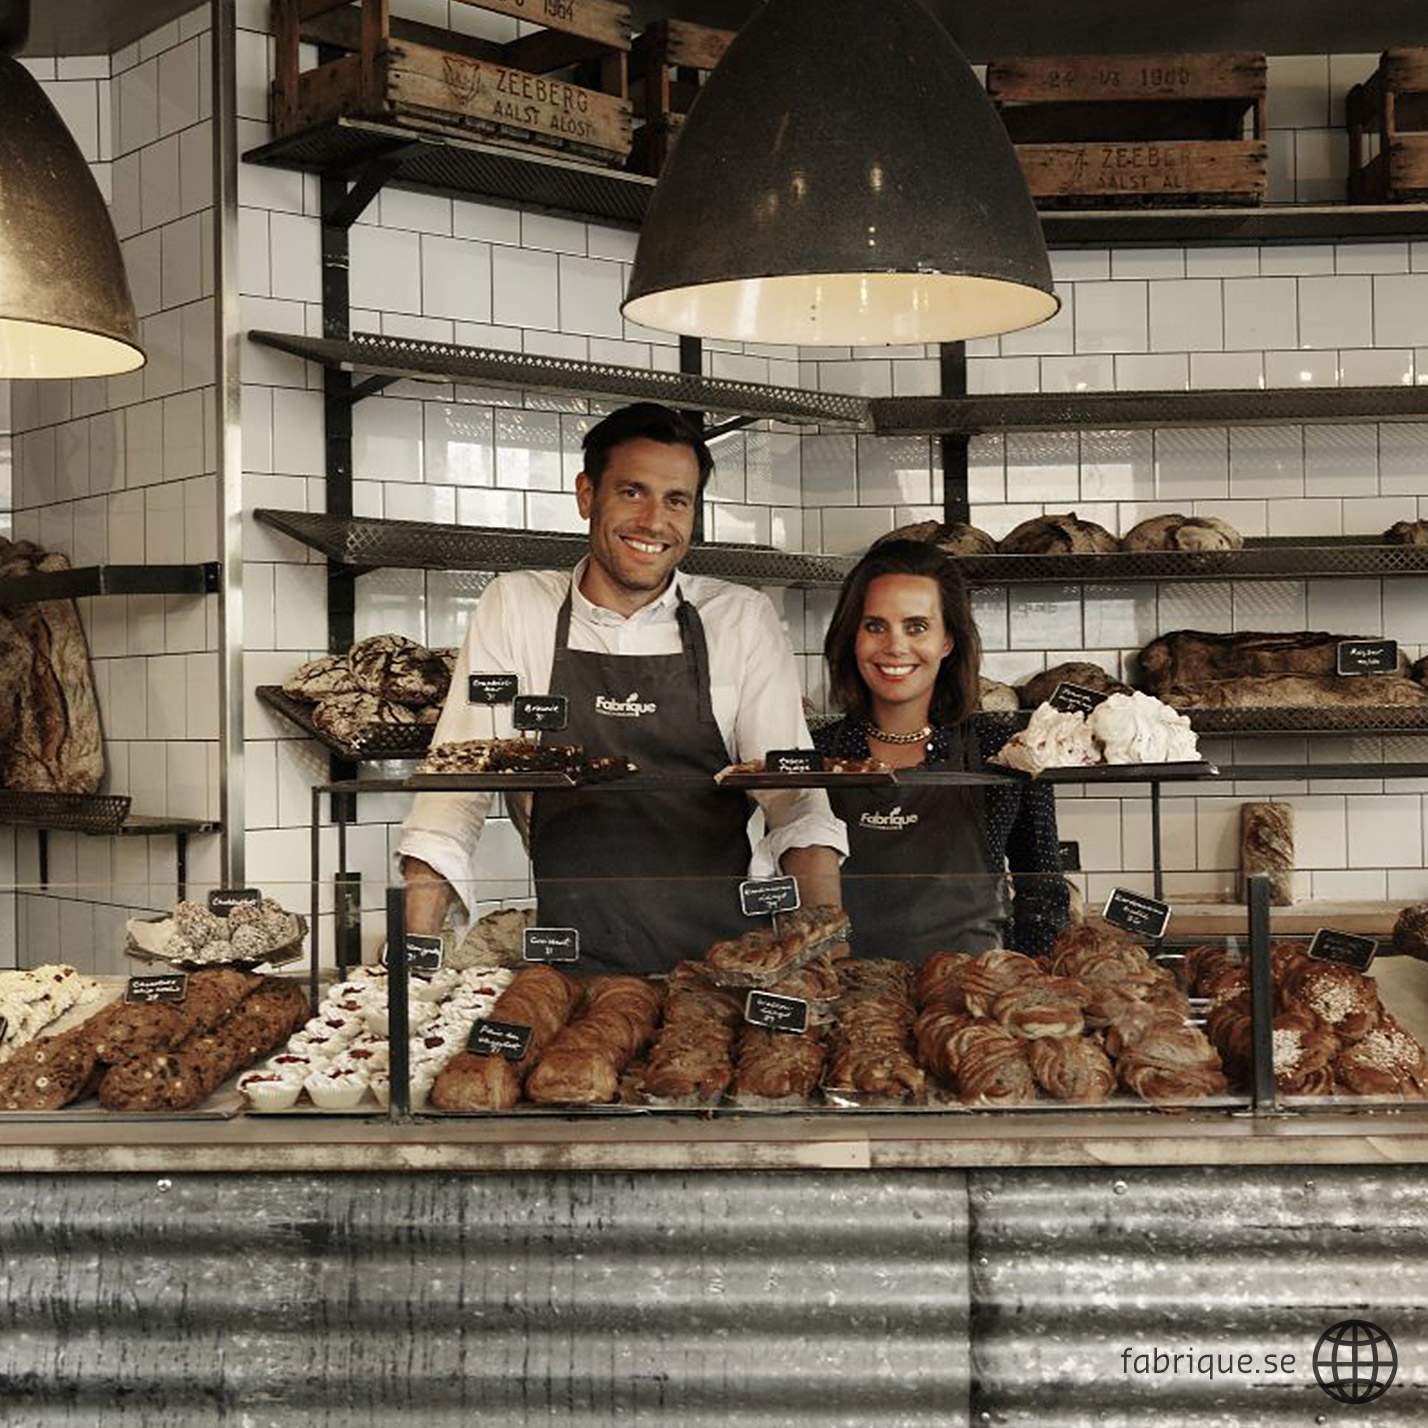 Stockholm's stars in bakery and patisserie